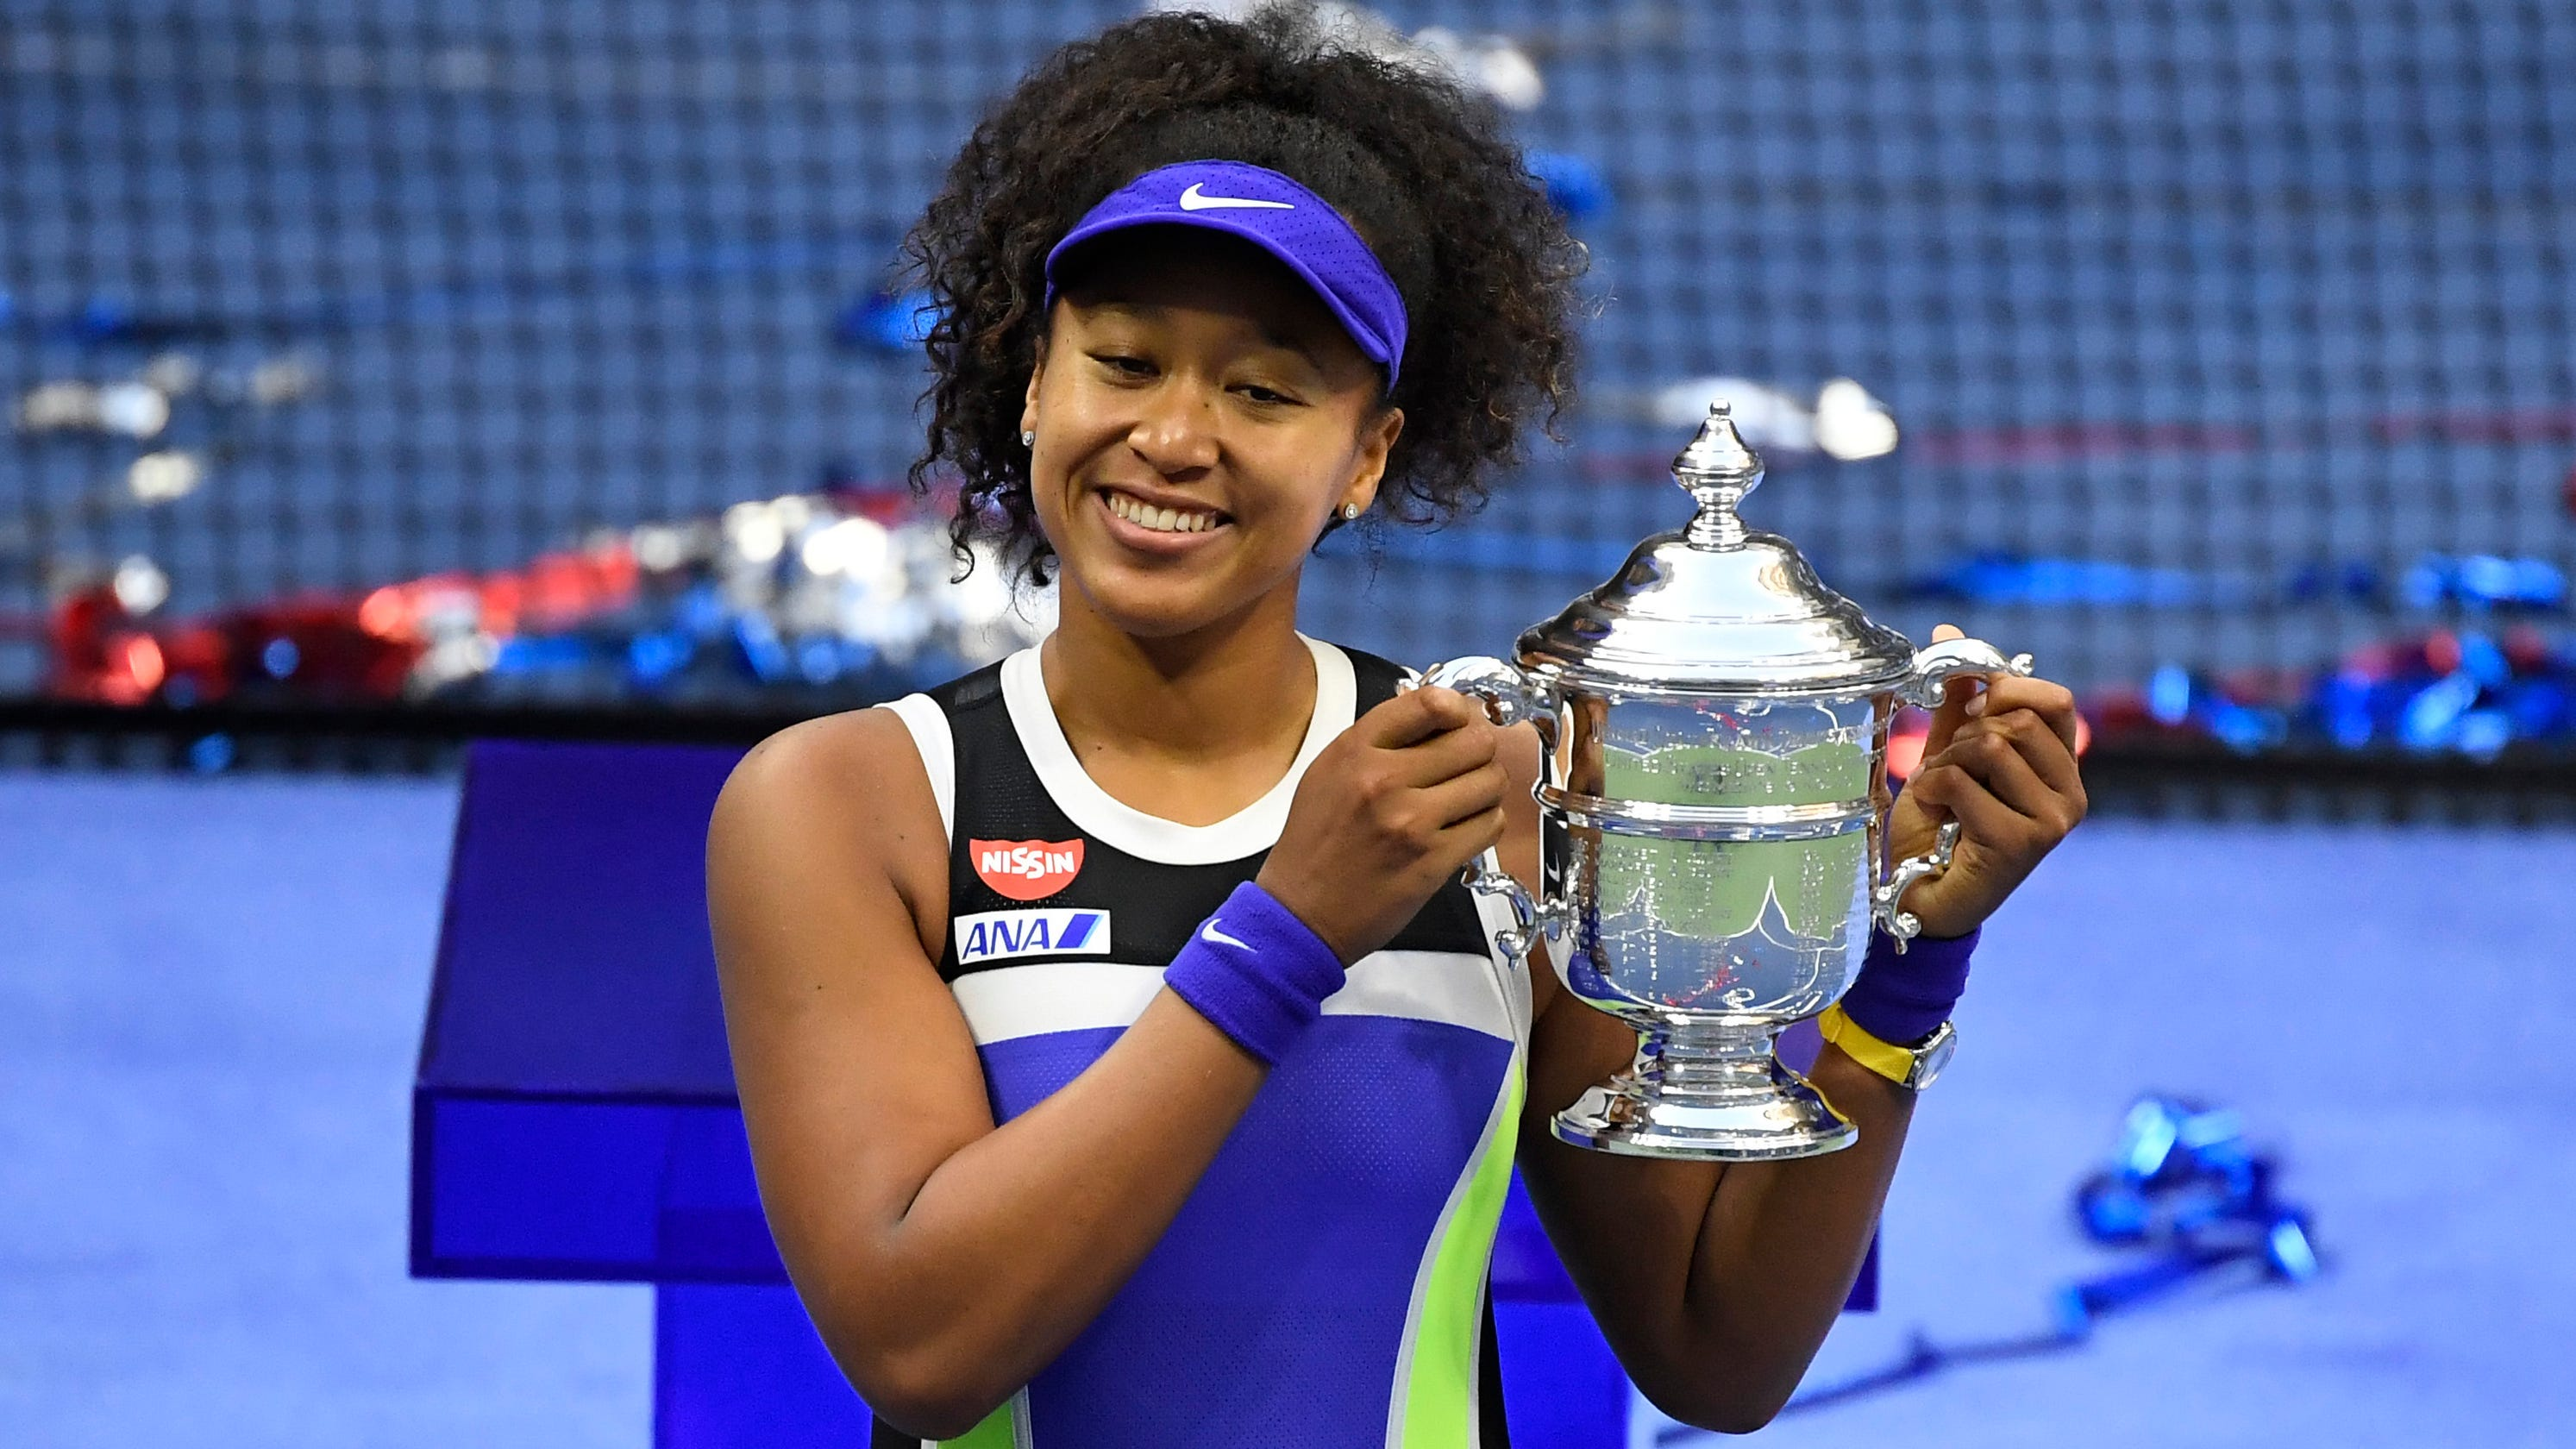 US Open champion Naomi Osaka won't play in French Open, citing hamstring injury